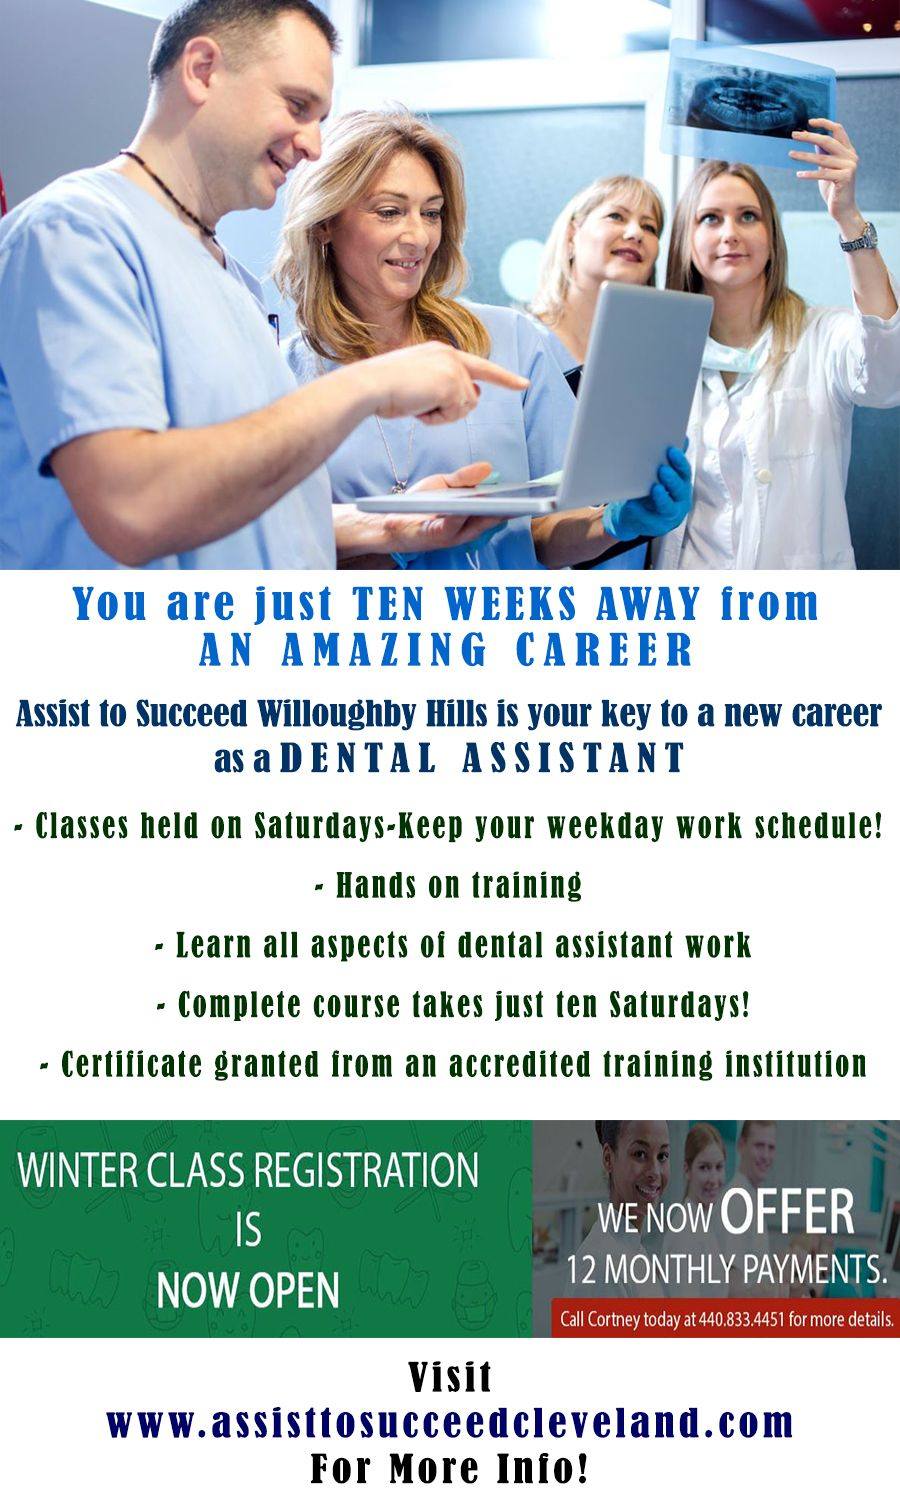 Dental Assisting Program Conducted By Assist To Succeed Willoughby